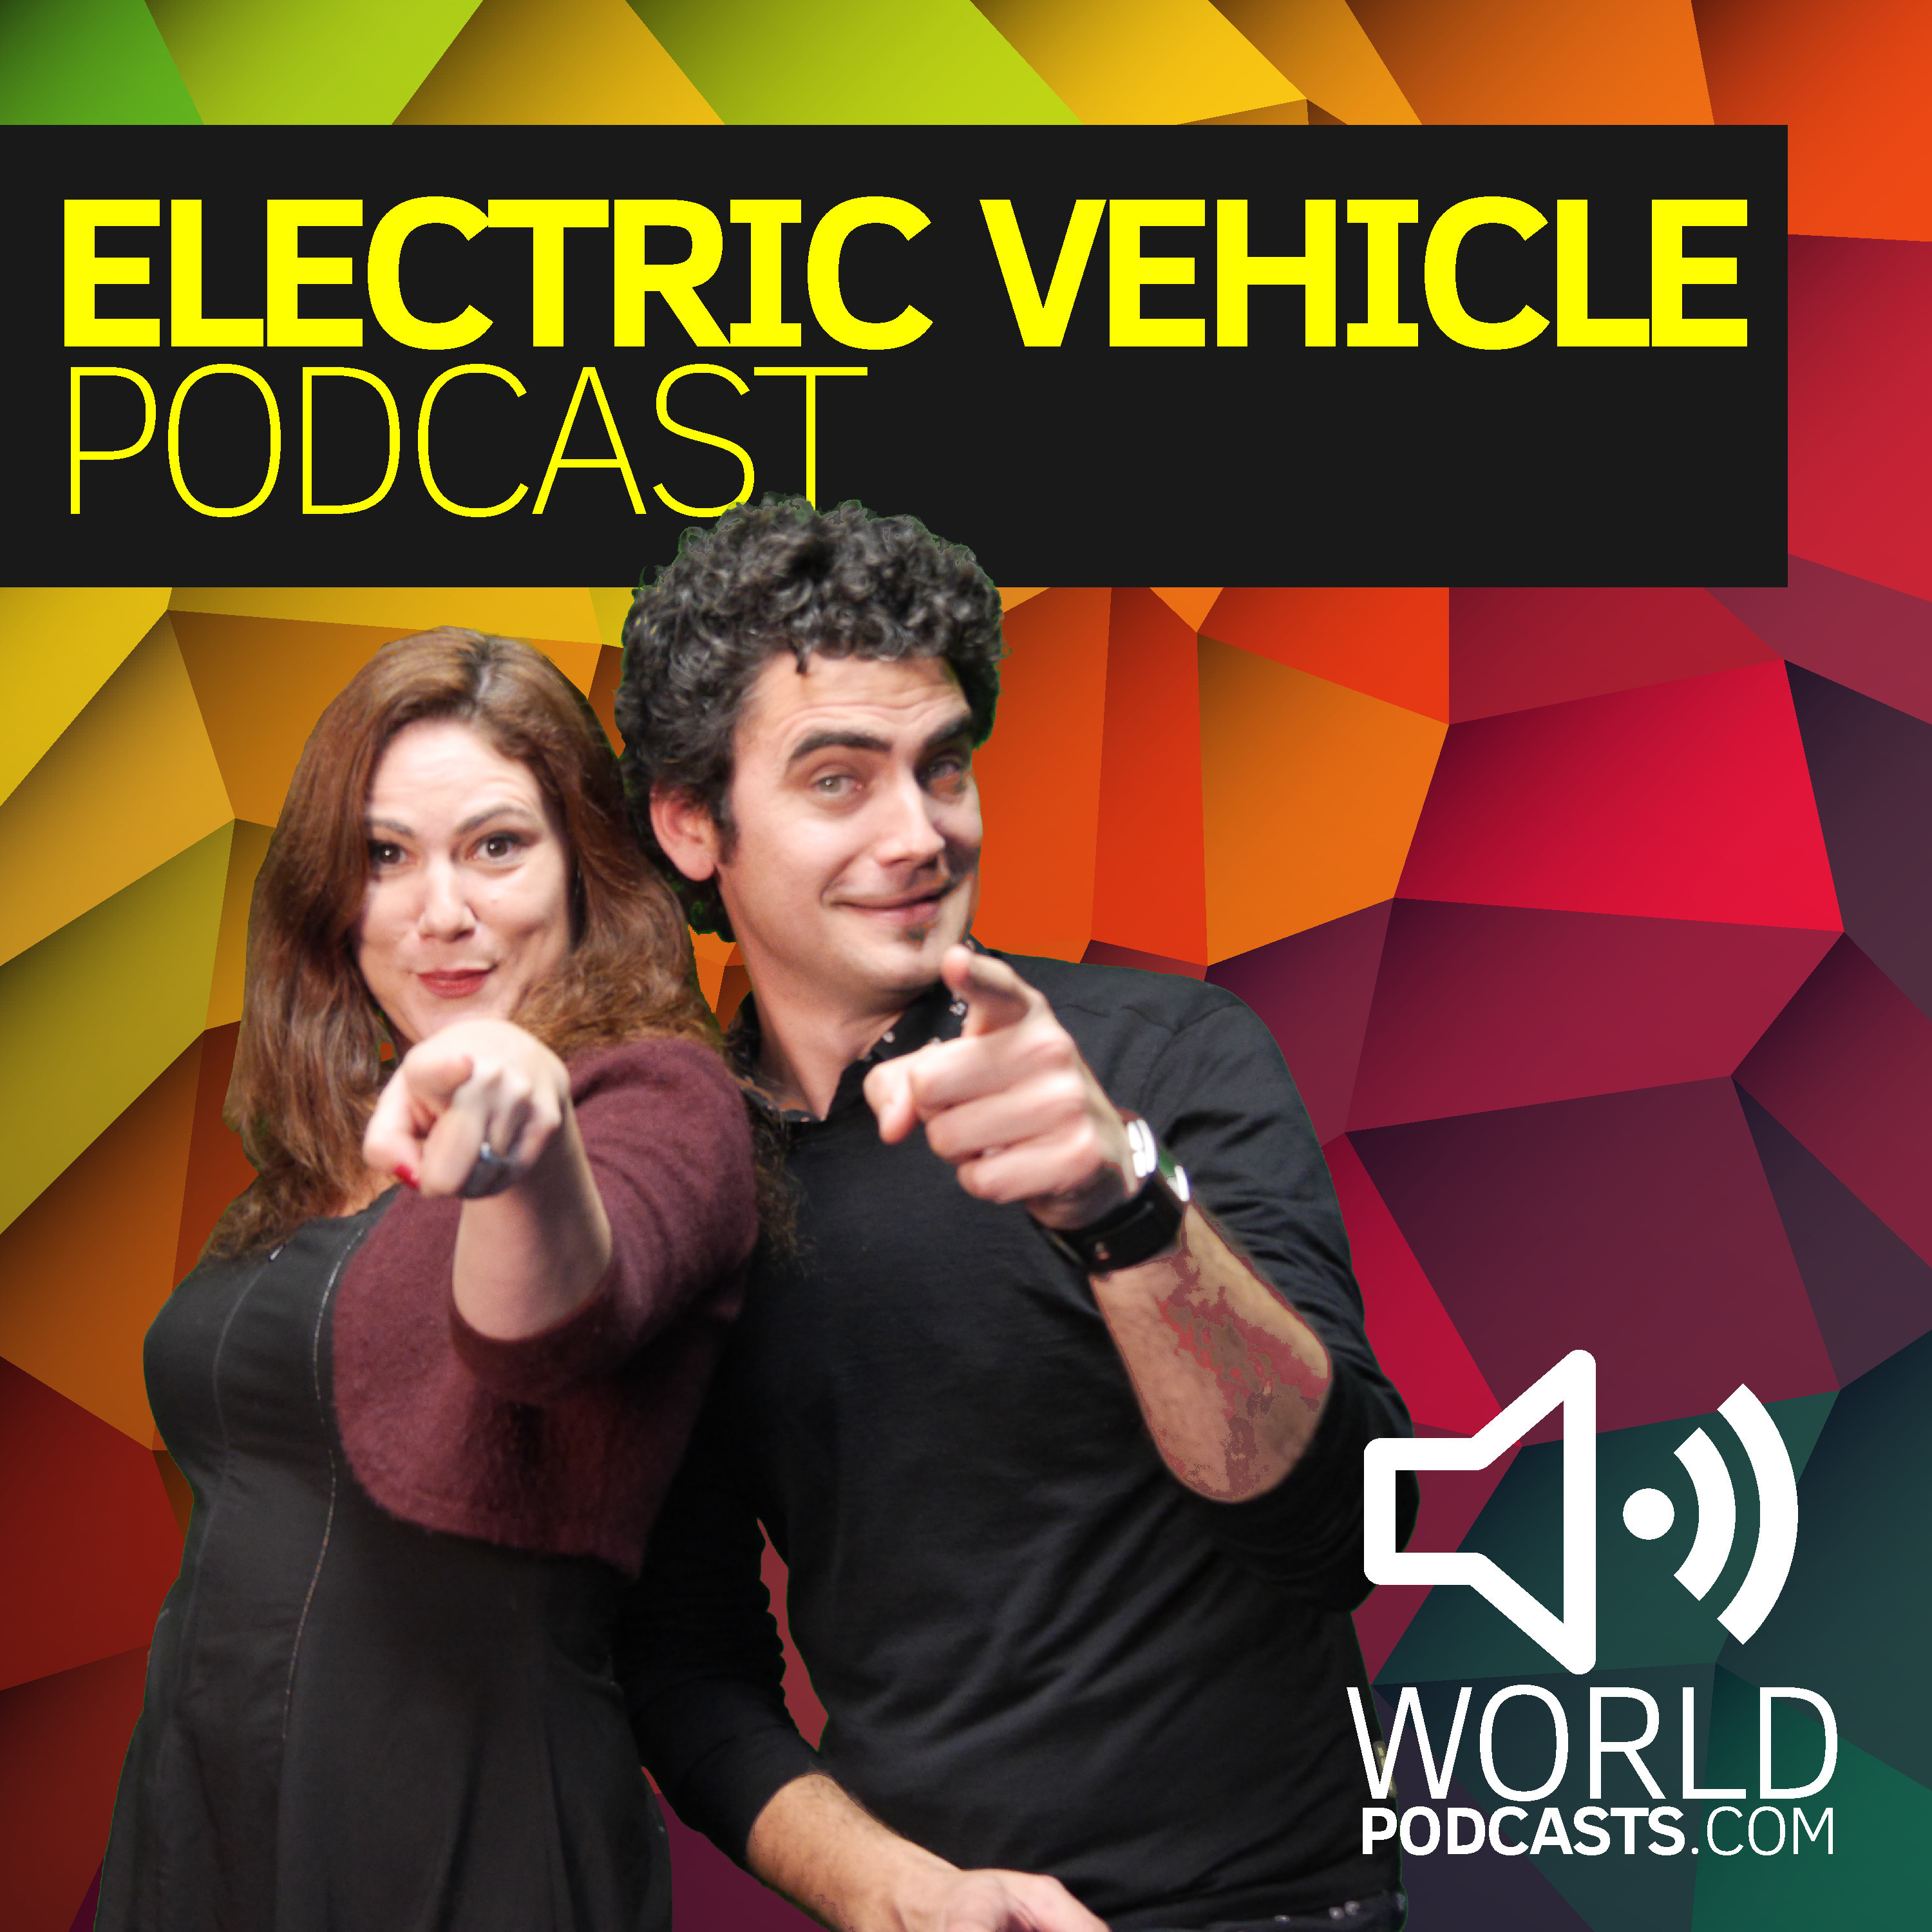 EV Podcast: Eva Hakansson - World's fastest Electric Motorcycle